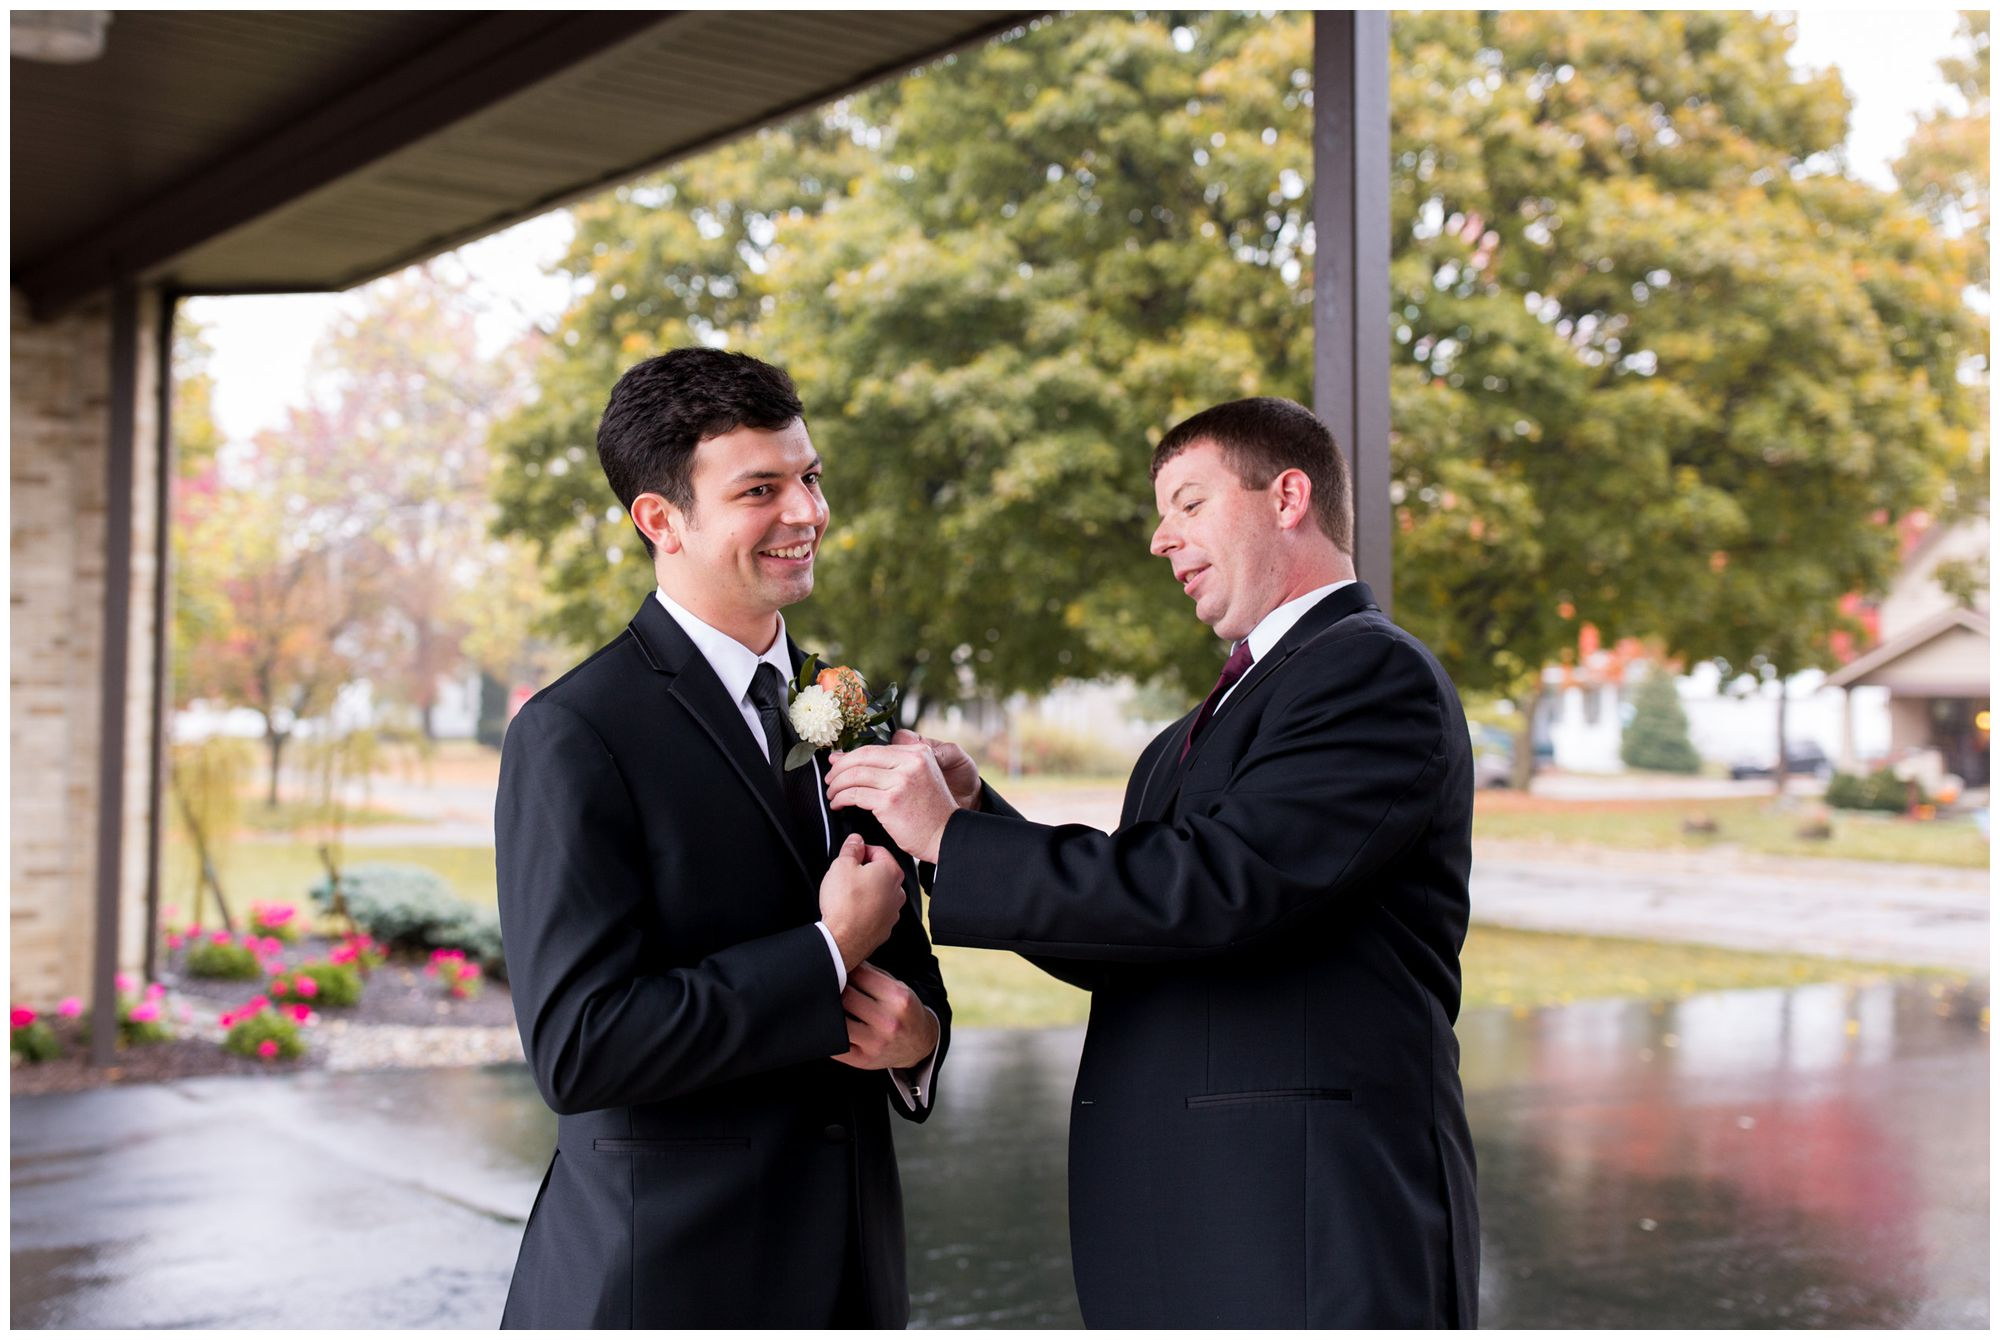 best man pins boutonniere to groom's jacket before first look at Zion Lutheran Church in Decatur Indiana